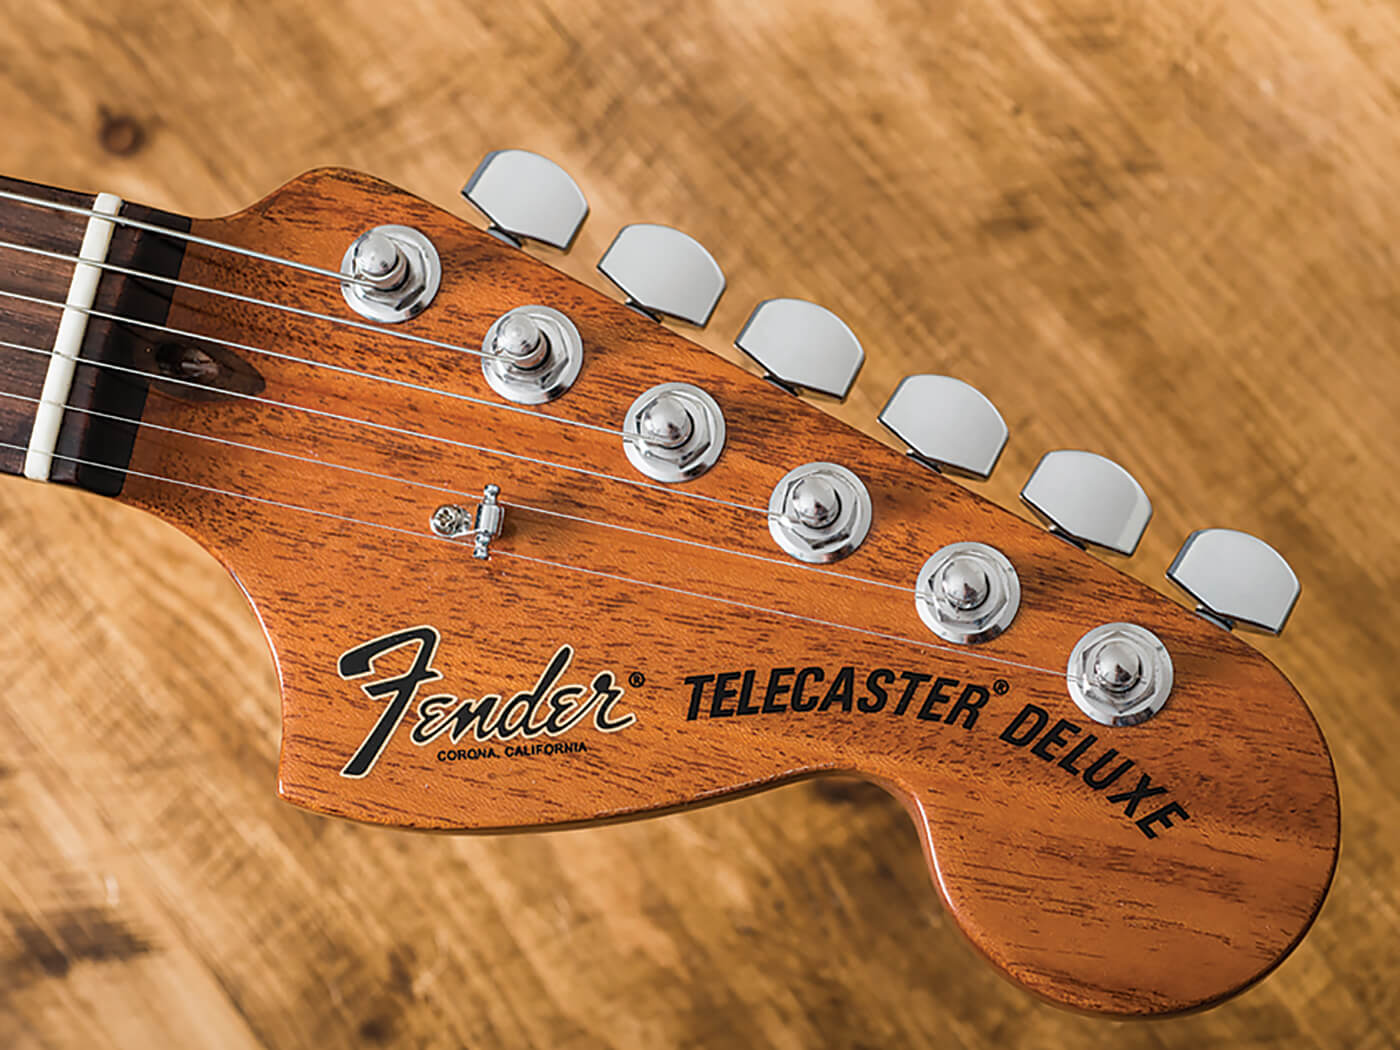 Parallel Telecaster